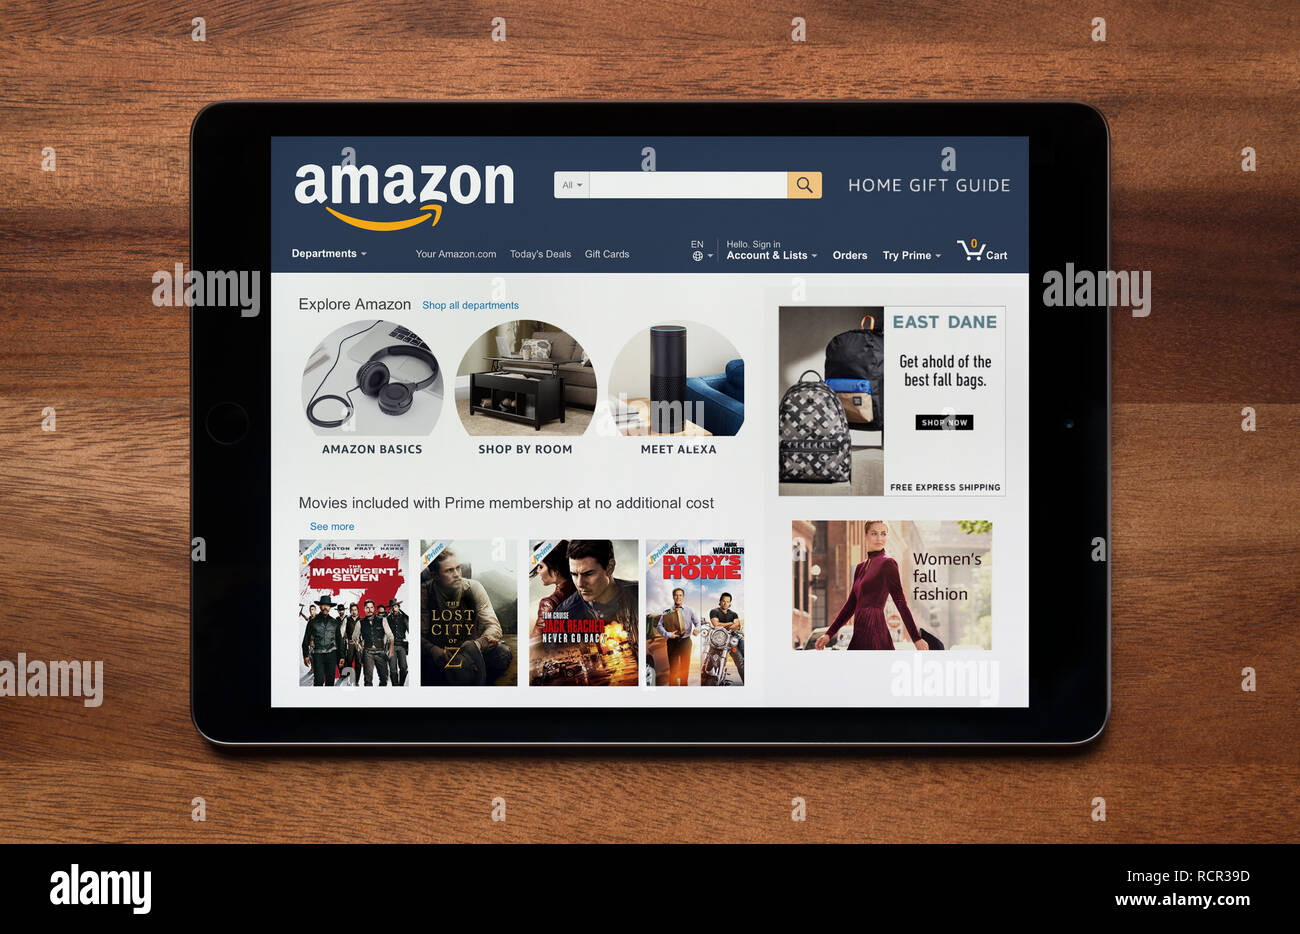 The website of Amazon is seen on an iPad tablet, which is resting on a wooden table (Editorial use only). - Stock Image